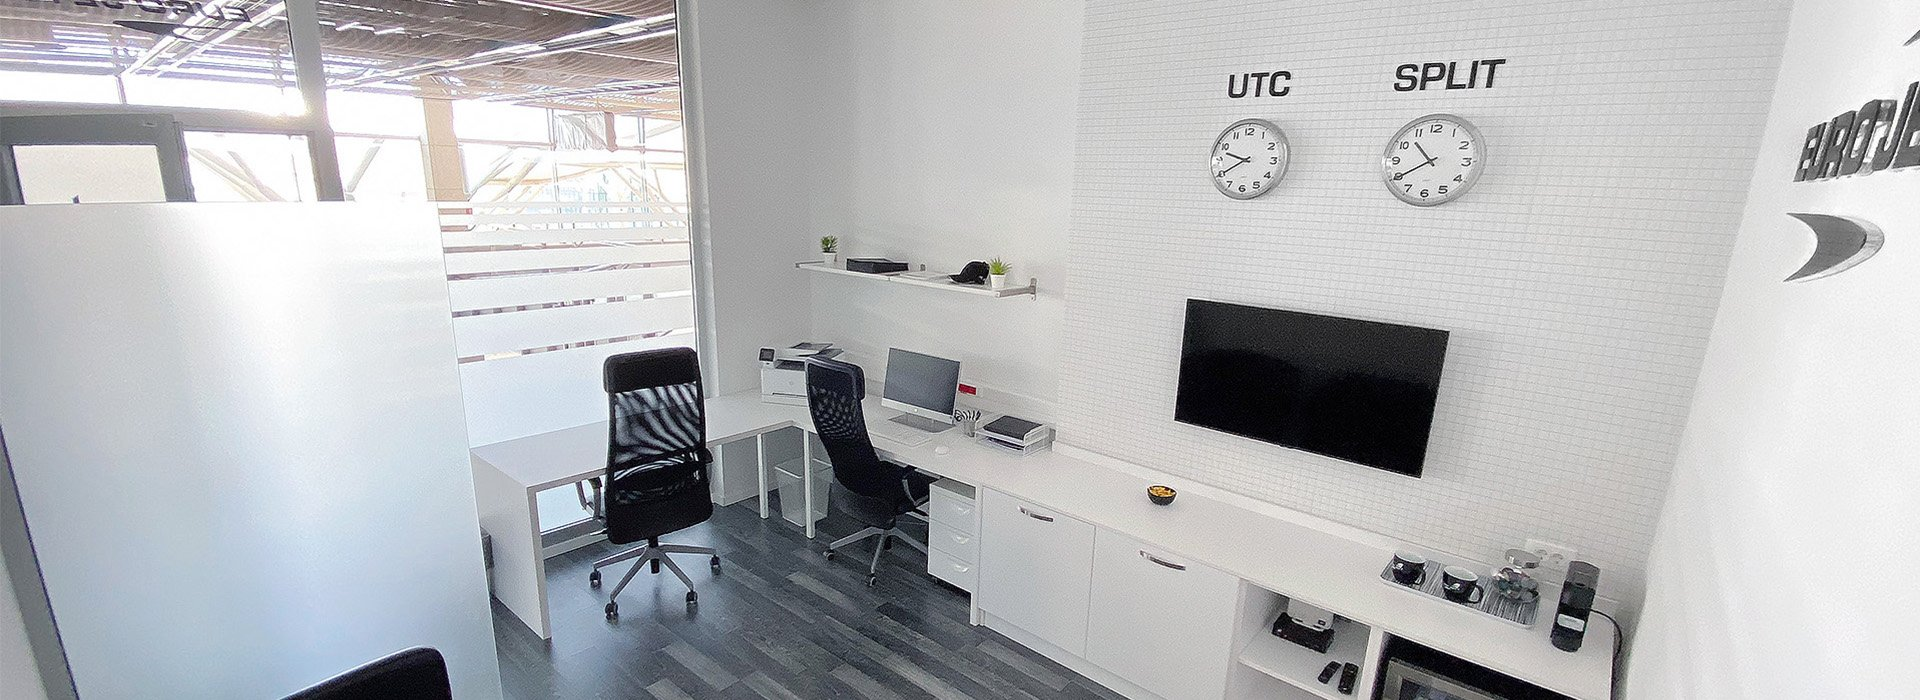 Euro Jet Opens a New Office in Split, Croatia